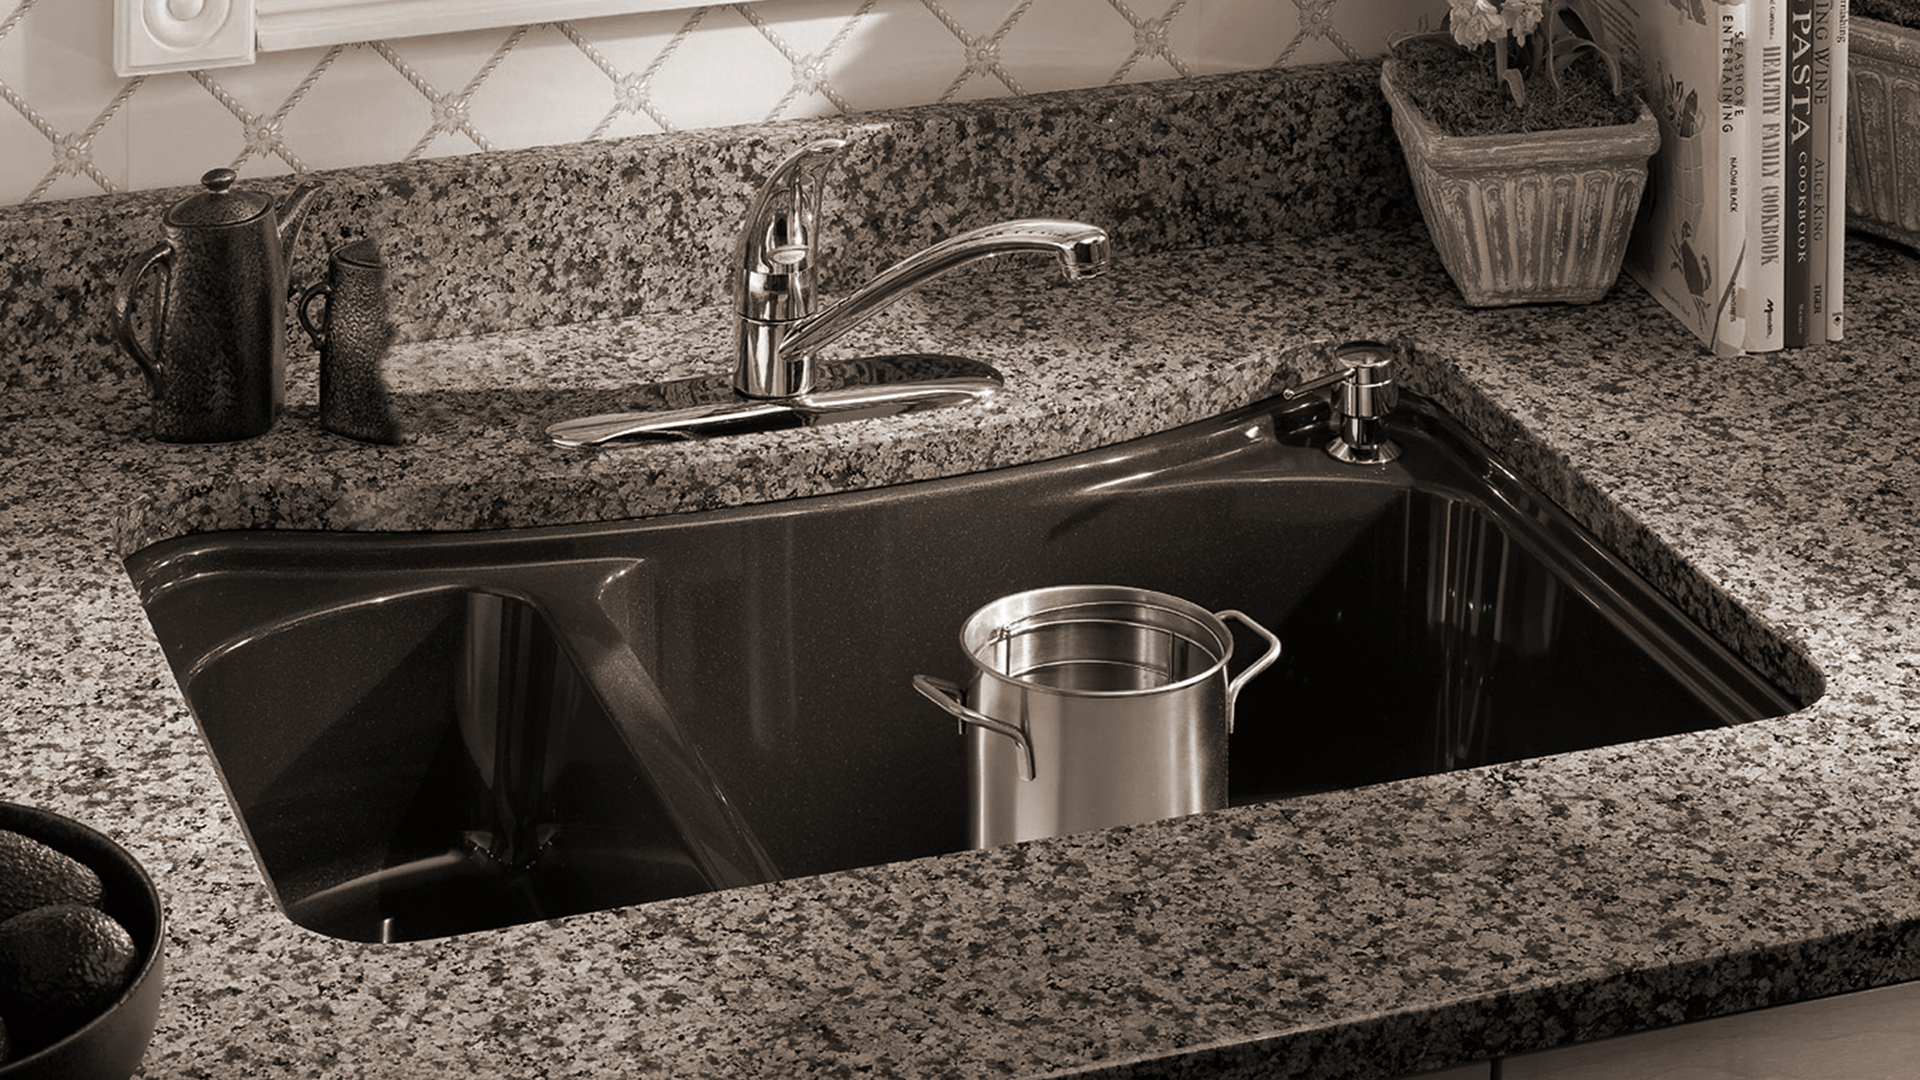 priority_designs_faucet_and_sink_design_and_development_003